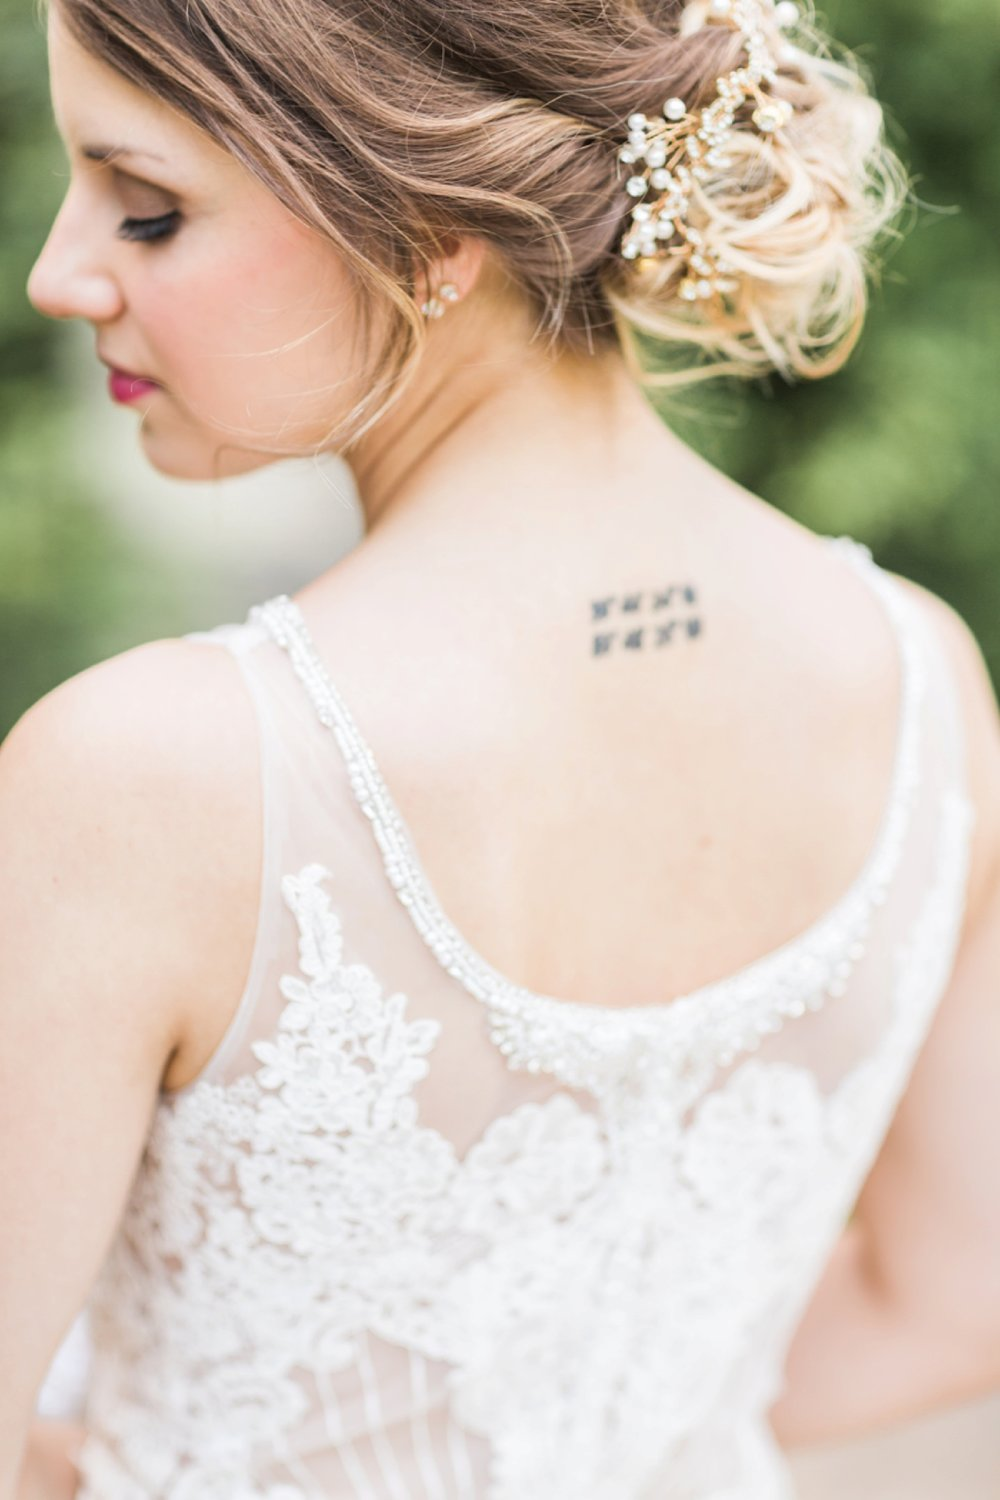 wegerzyn-gardens-wedding-dayton-ohio-chloe-luka-photography_0101.jpg